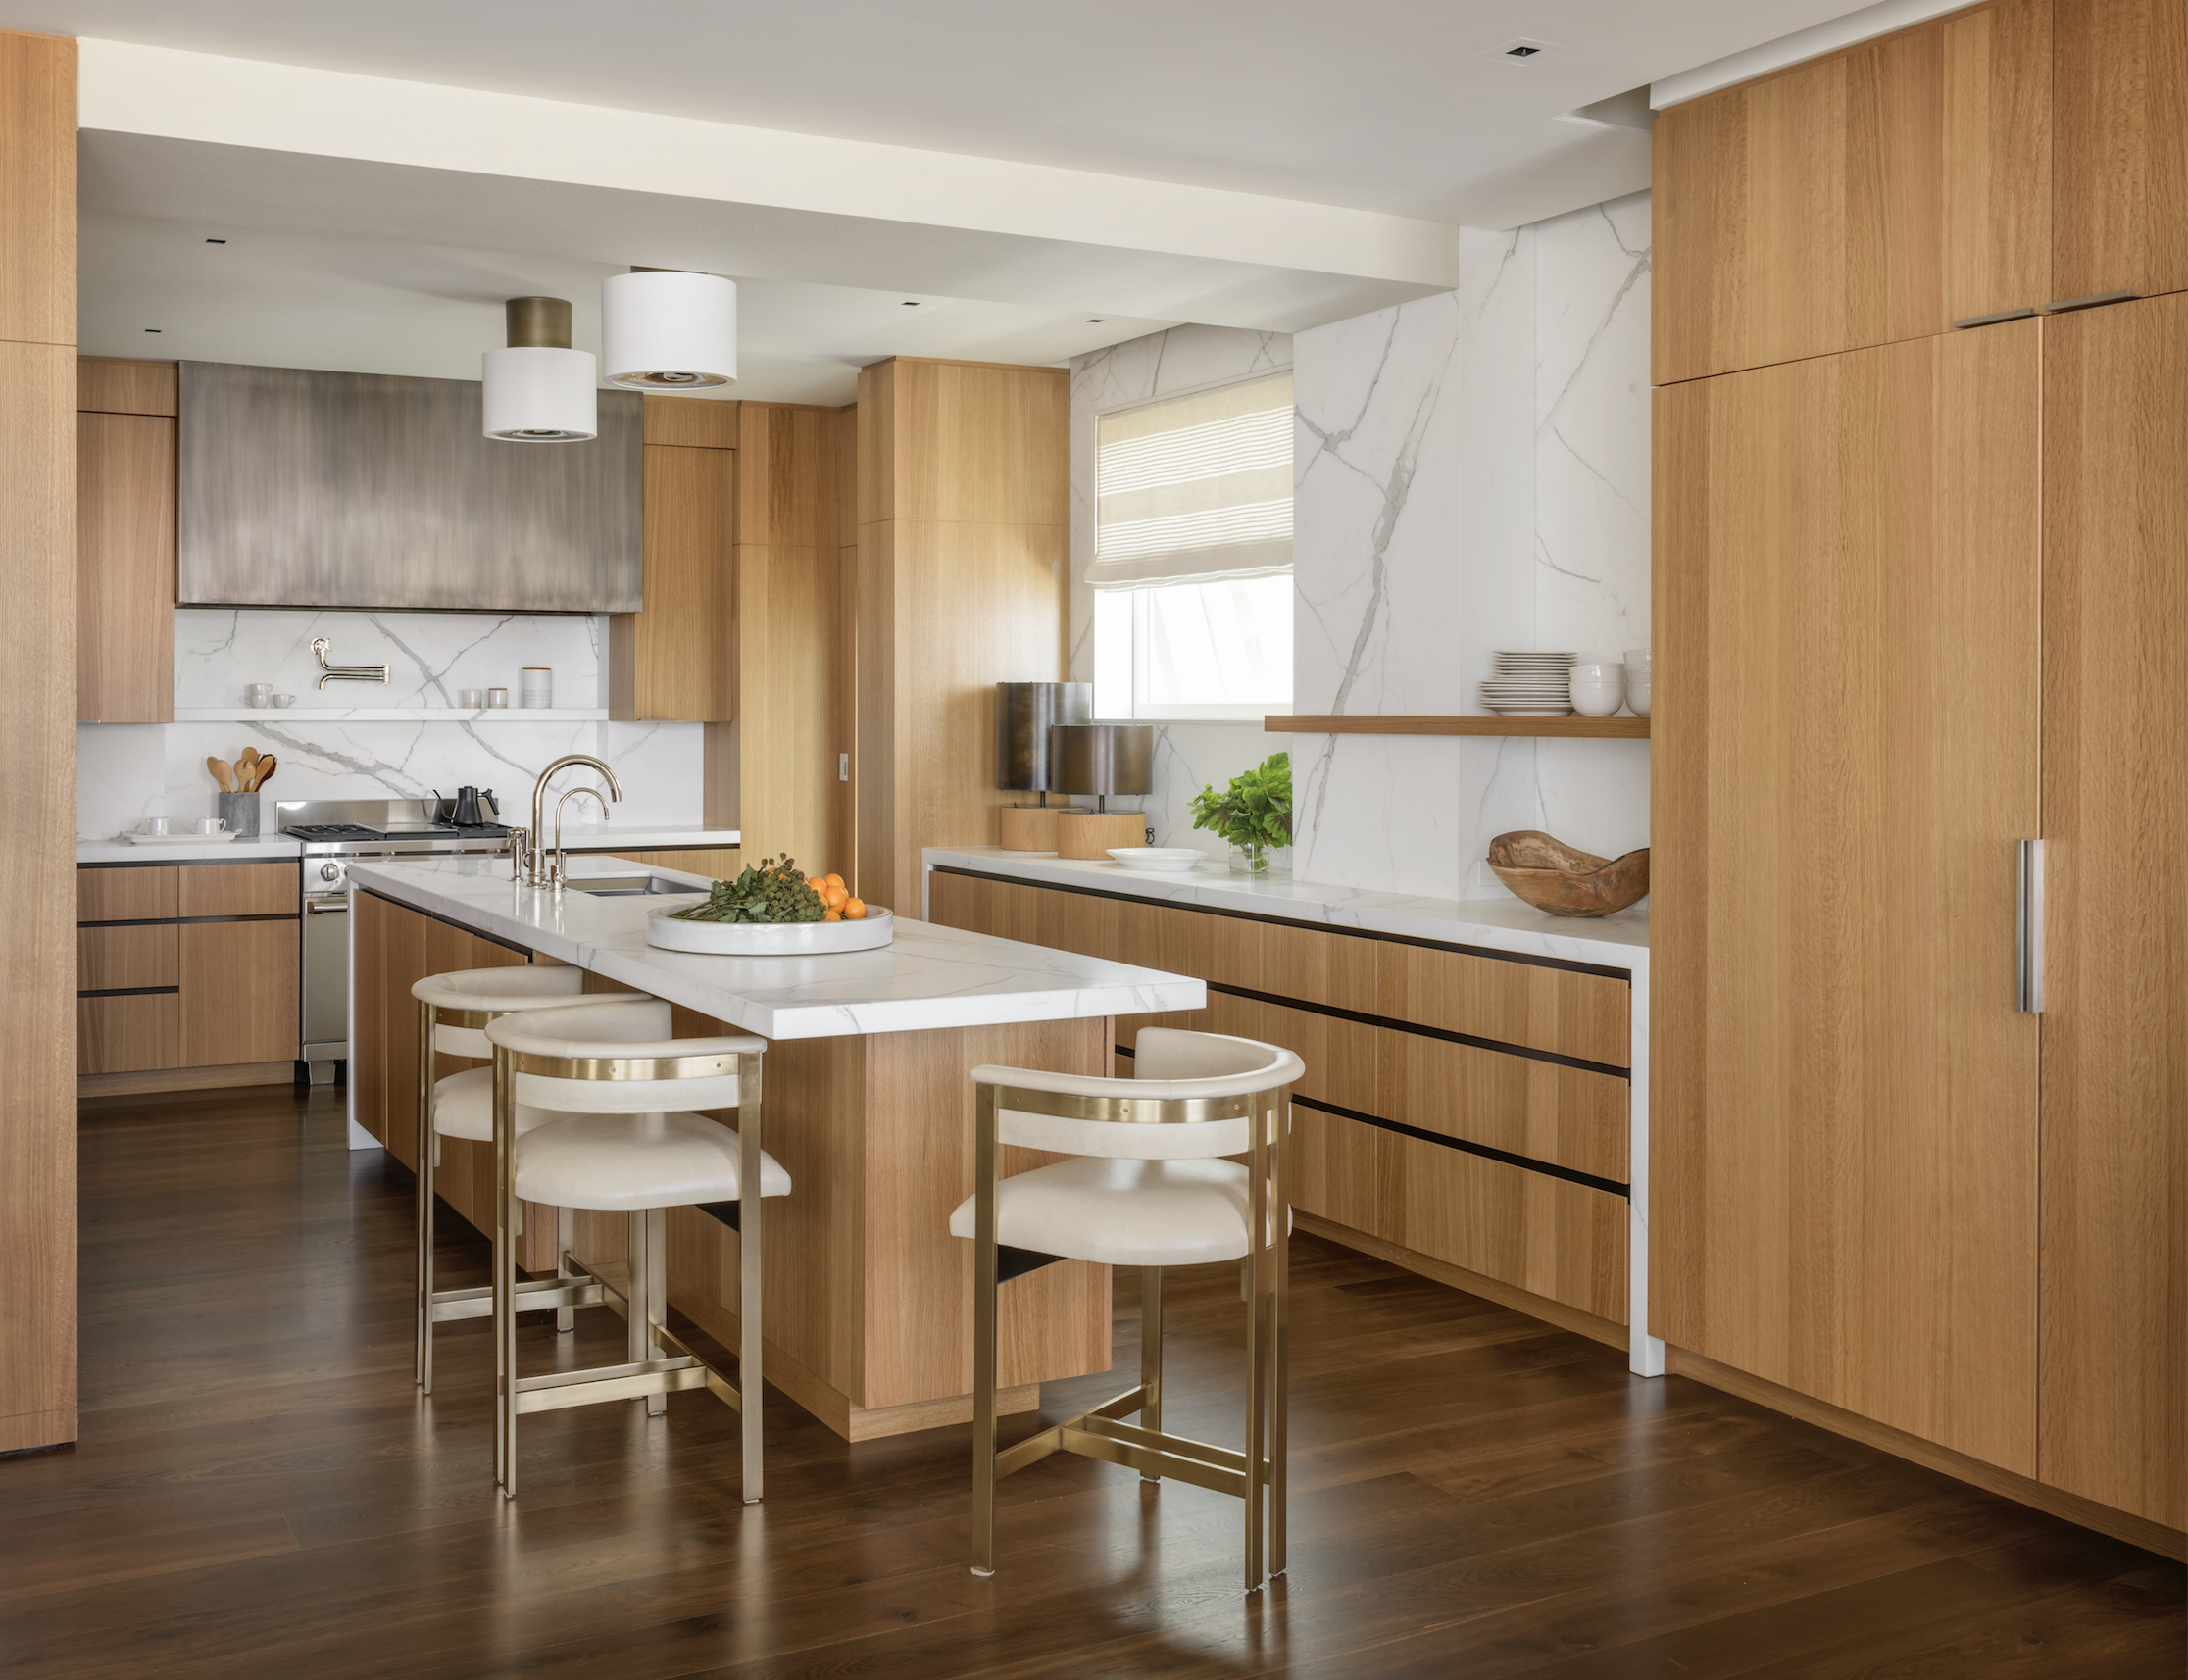 Image of: Kitchen Trends 2020 Designers Share Their Kitchen Predictions For 2020